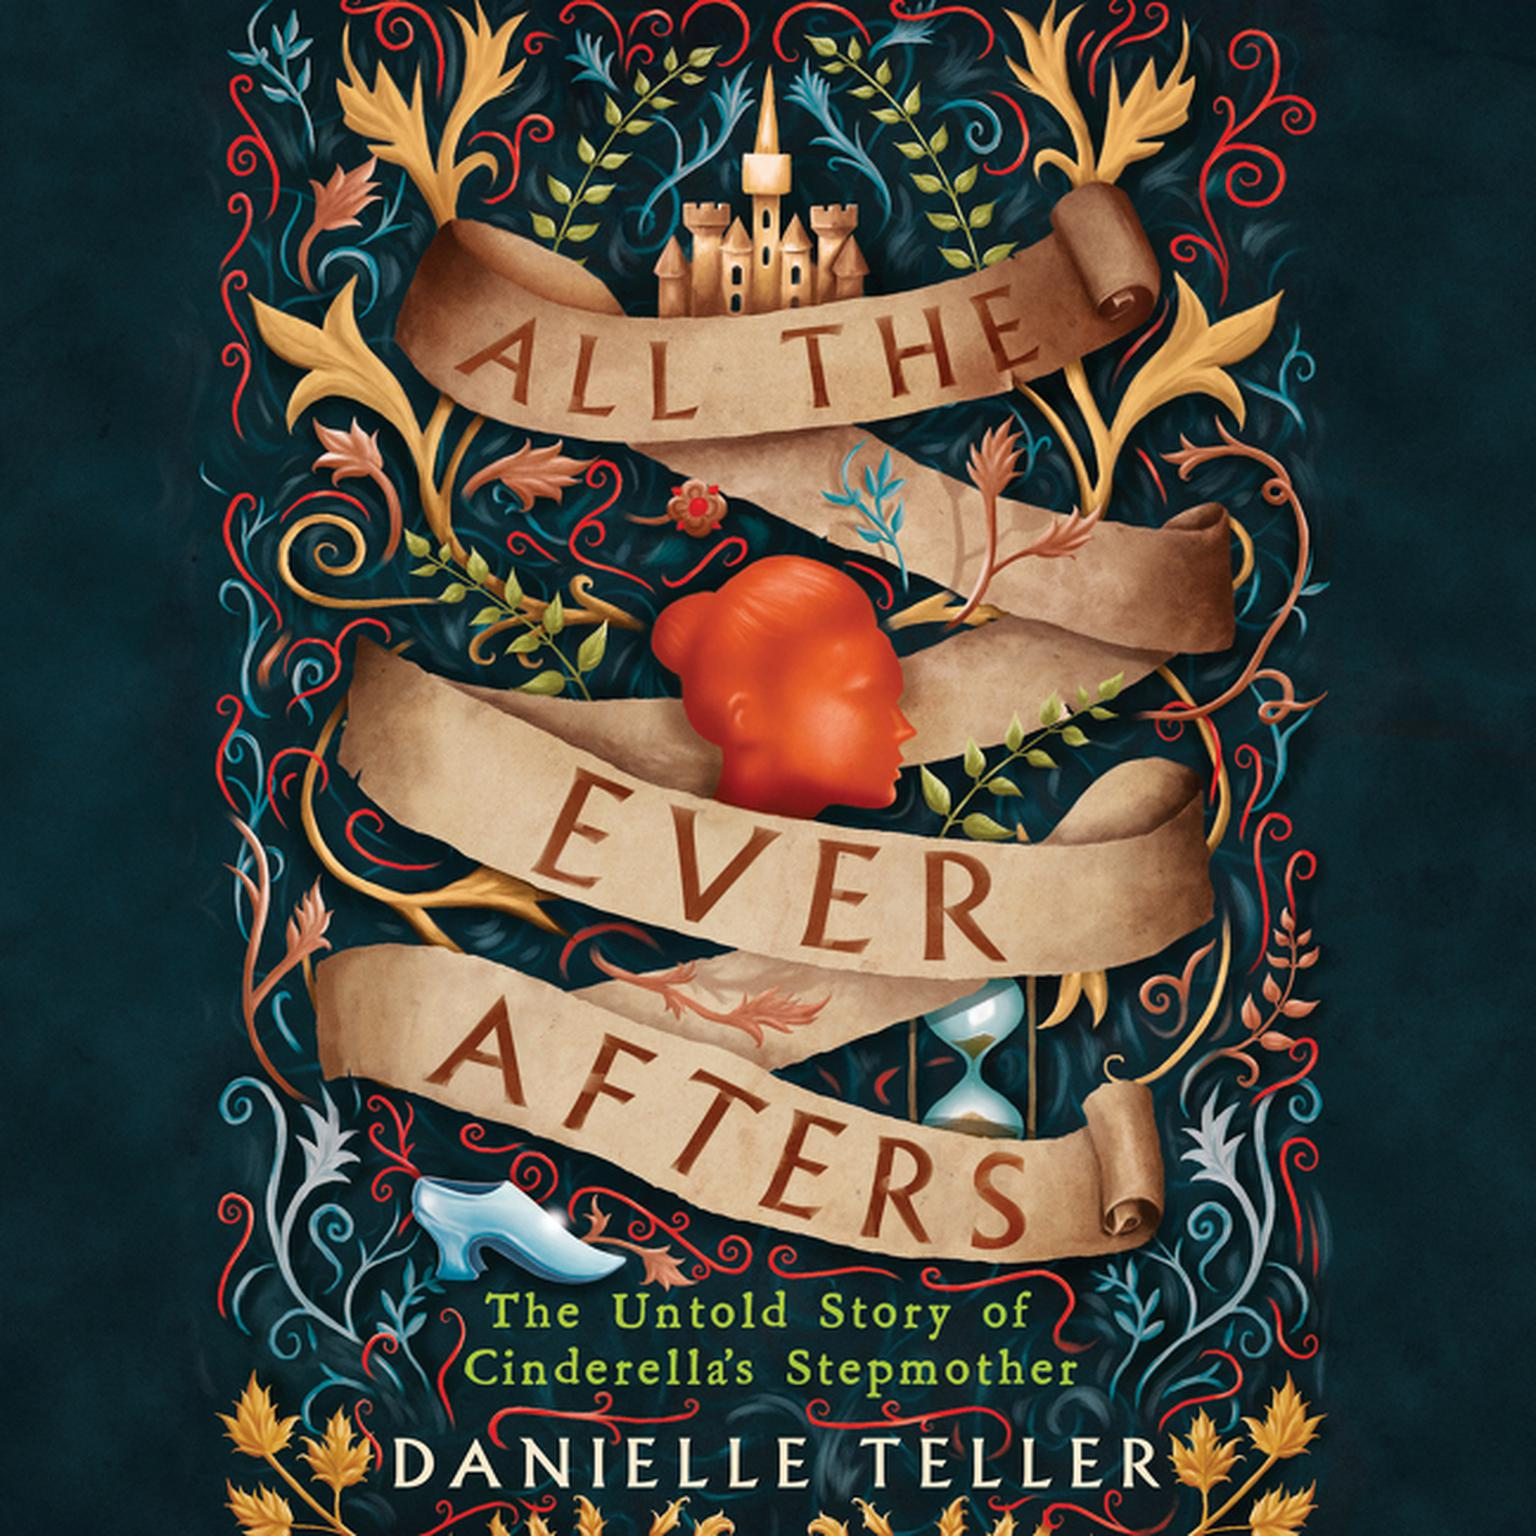 All the Ever Afters: The Untold Story of Cinderella's Stepmother Audiobook, by Danielle Teller